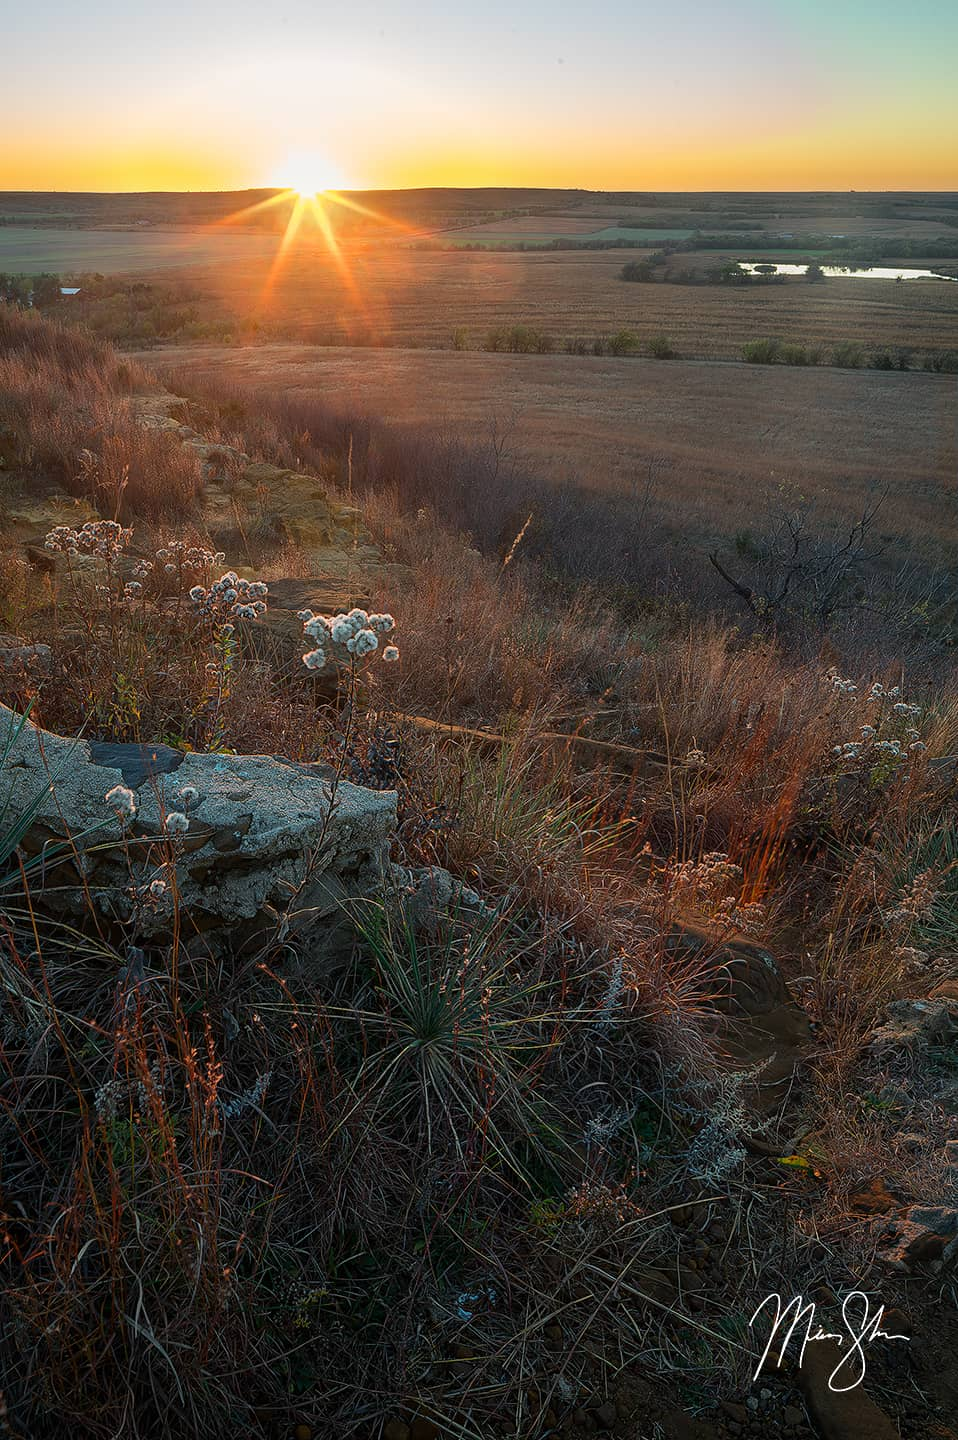 Open edition fine art print of Coronado Heights Sunset from Mickey Shannon Photography. Location: Coronado Heights, KS